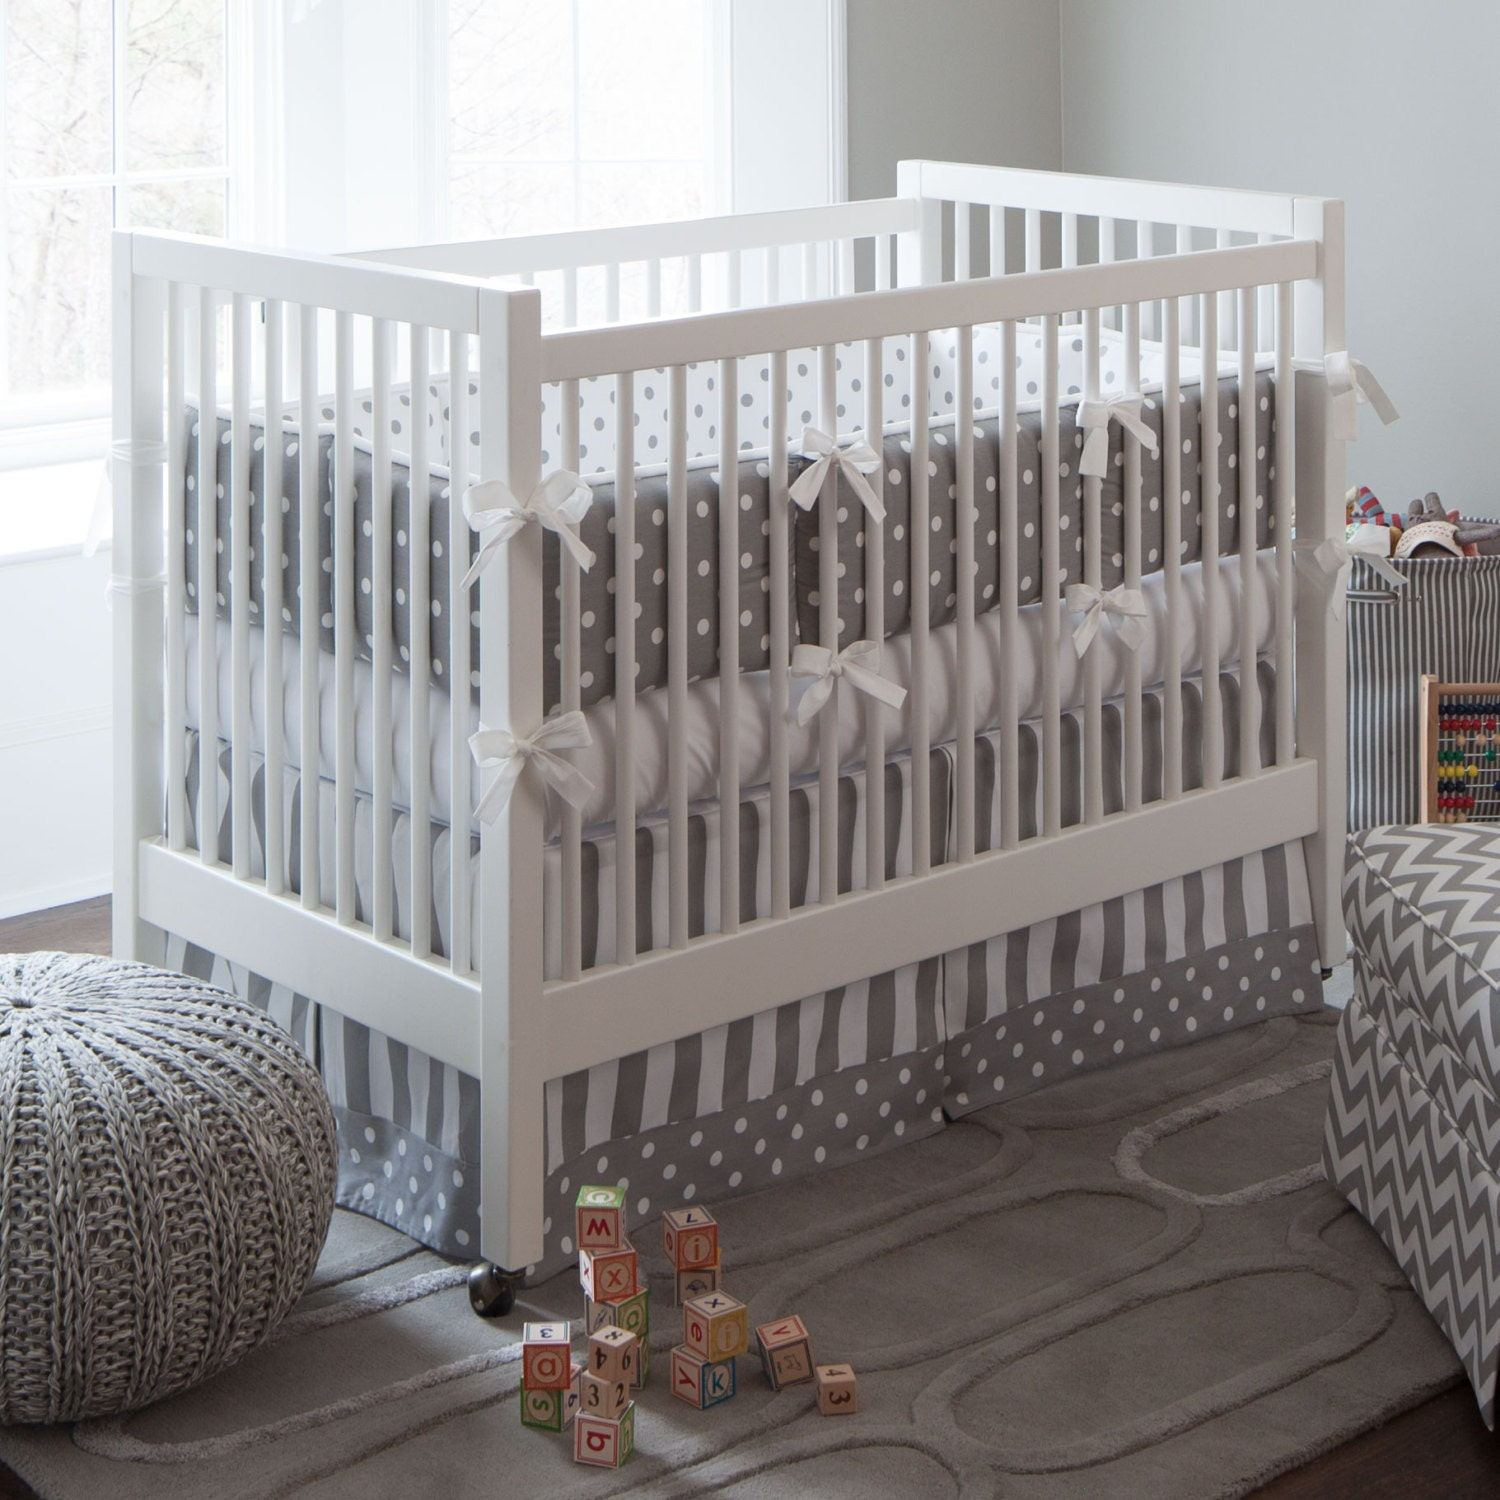 Neutral Crib Bedding Girl Baby Crib Bedding Boy Baby